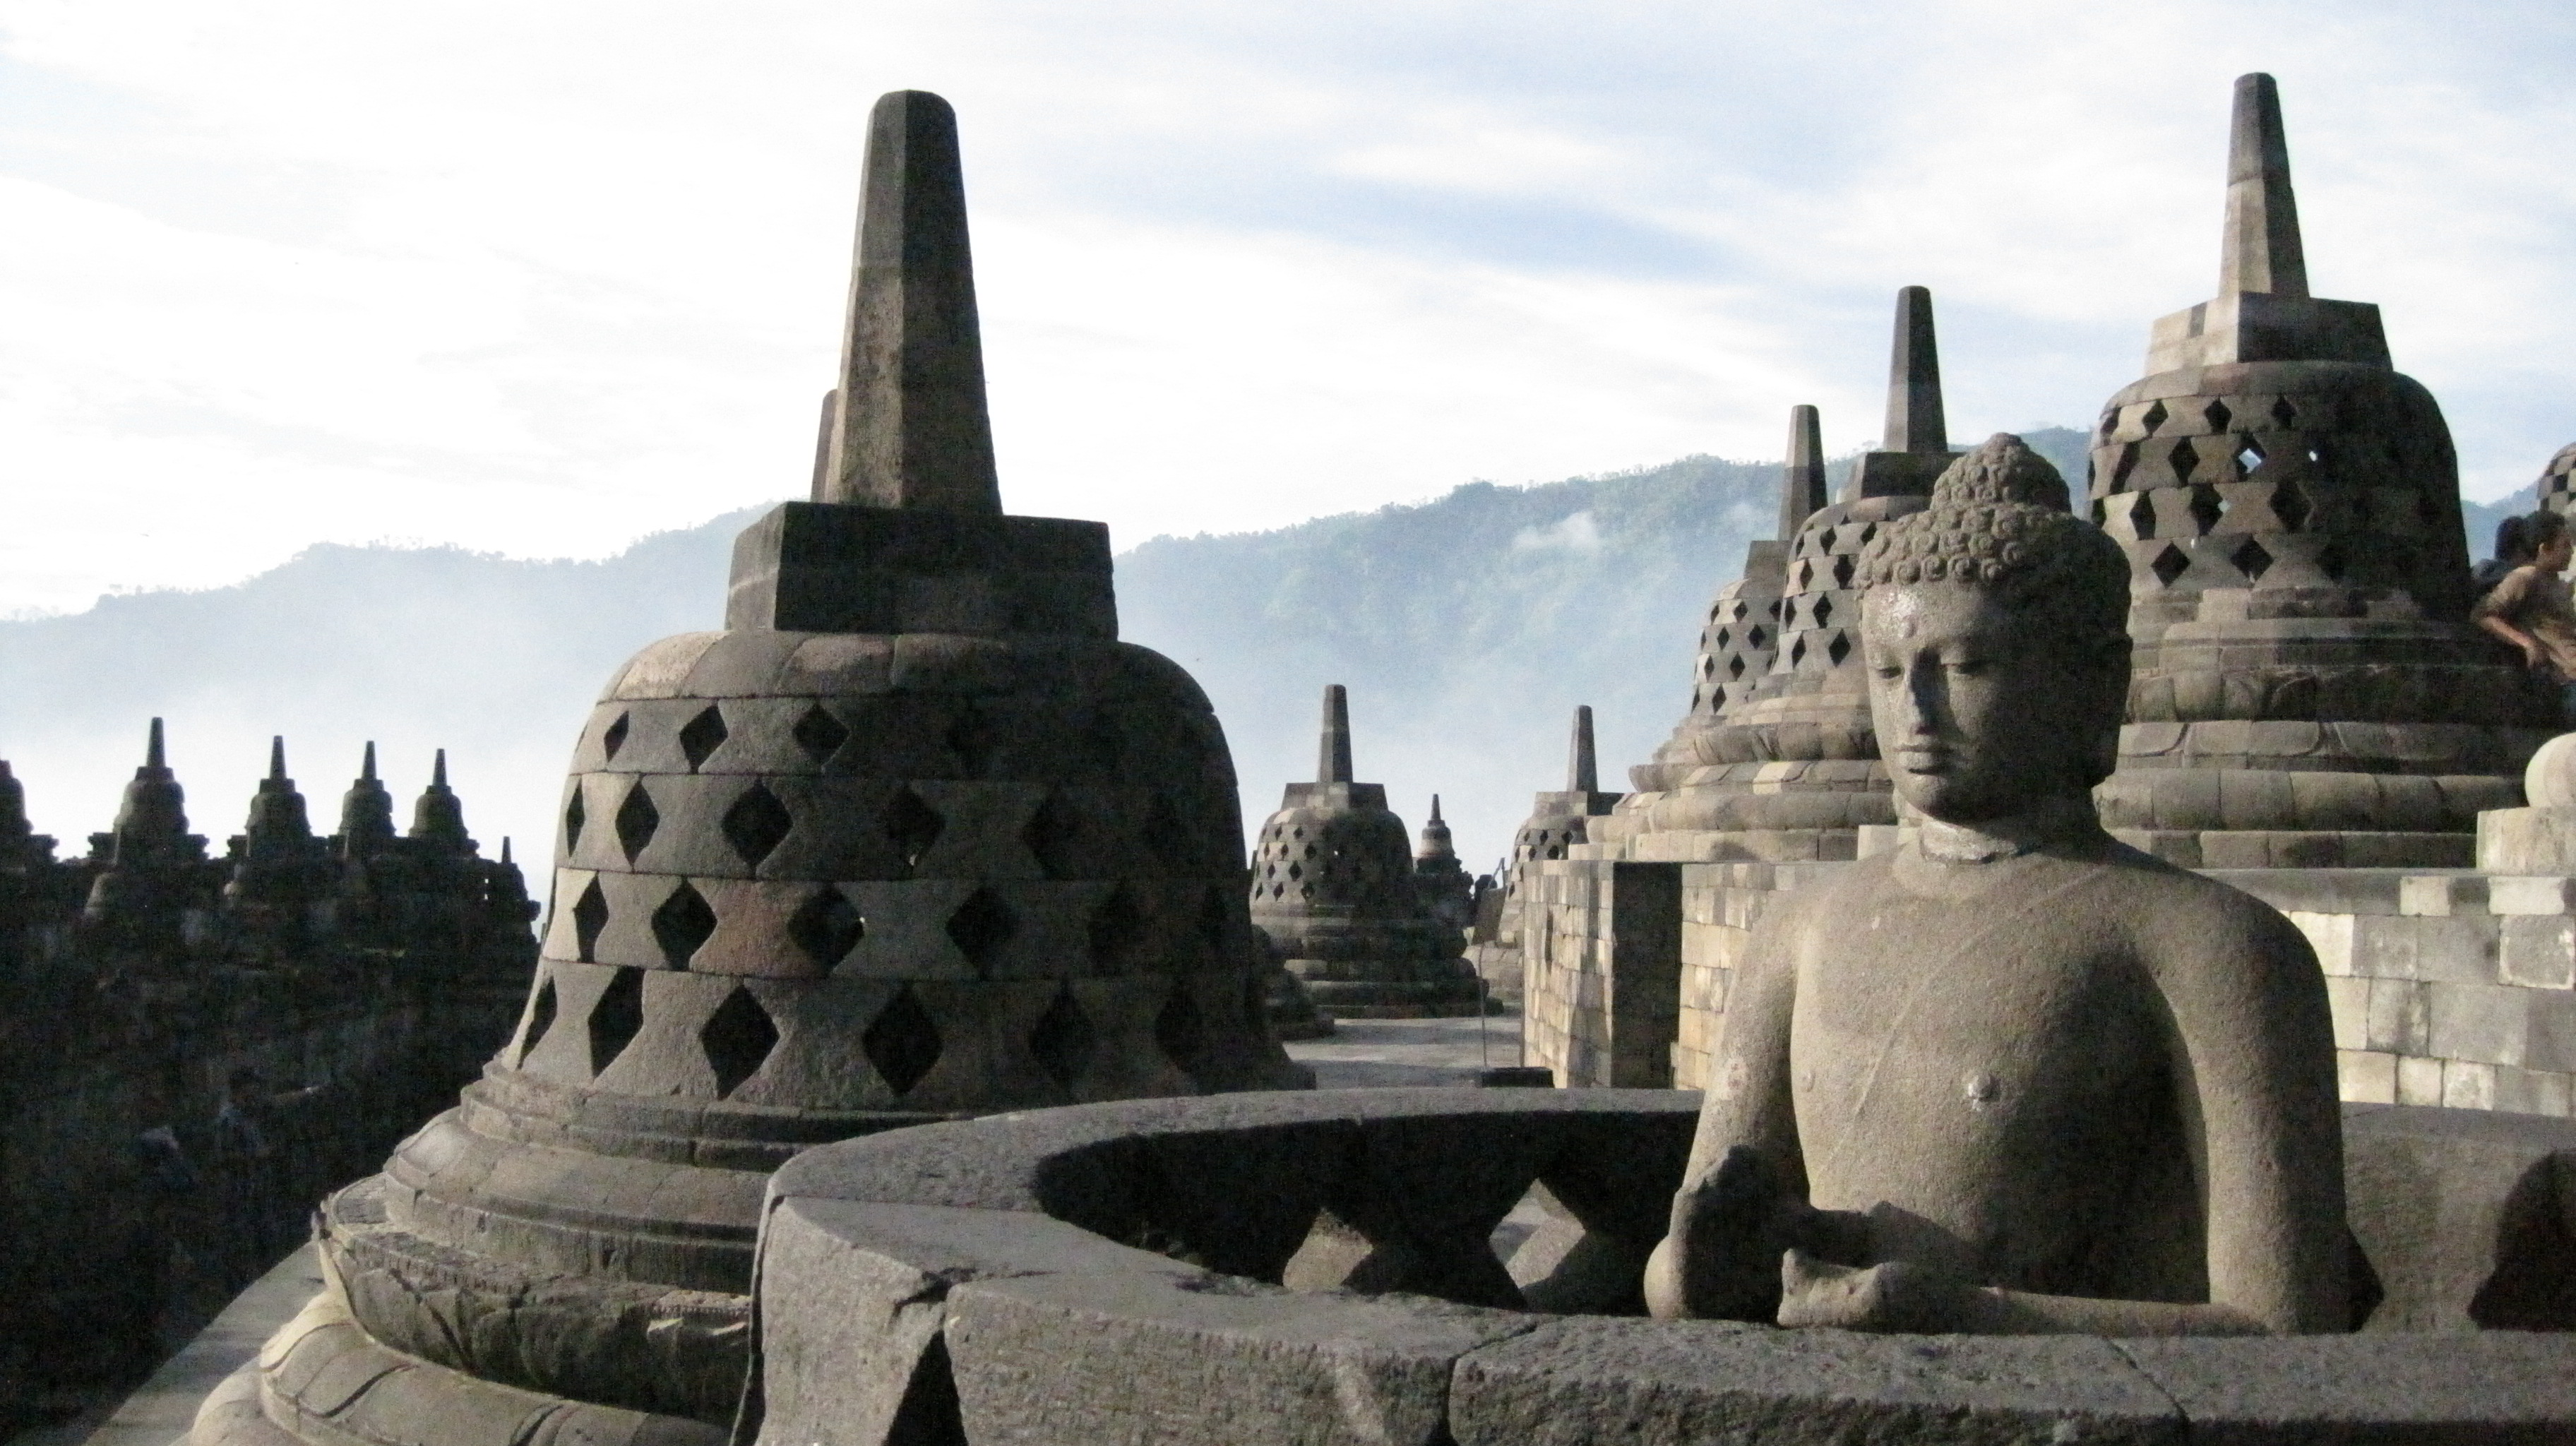 Private Car Rental >> Traveler Love Borobudur, Discover Why Today - Tour From ...